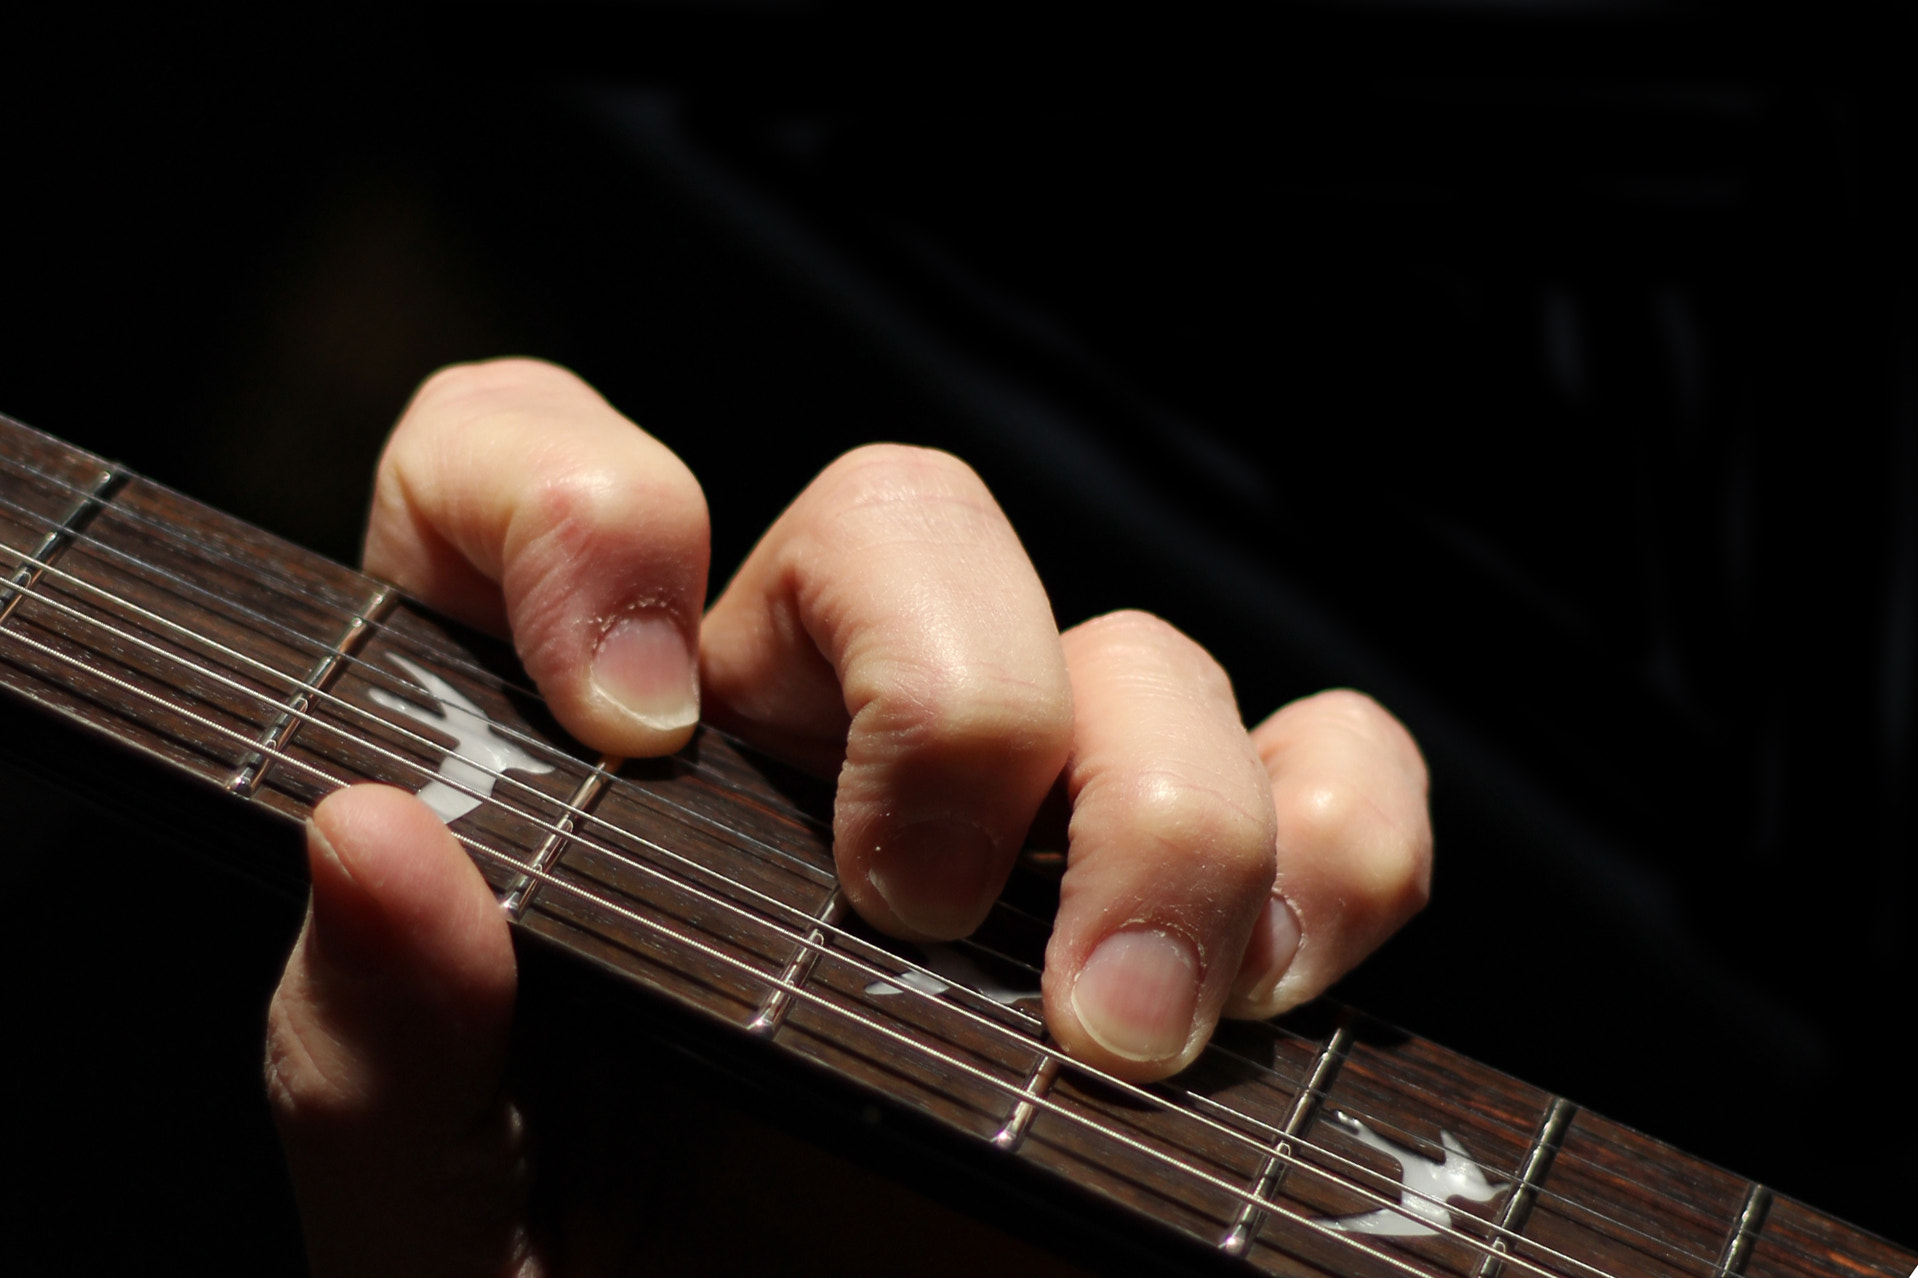 Photograph My View - Fingers on the Fretboard by Andy Operchuck on 500px